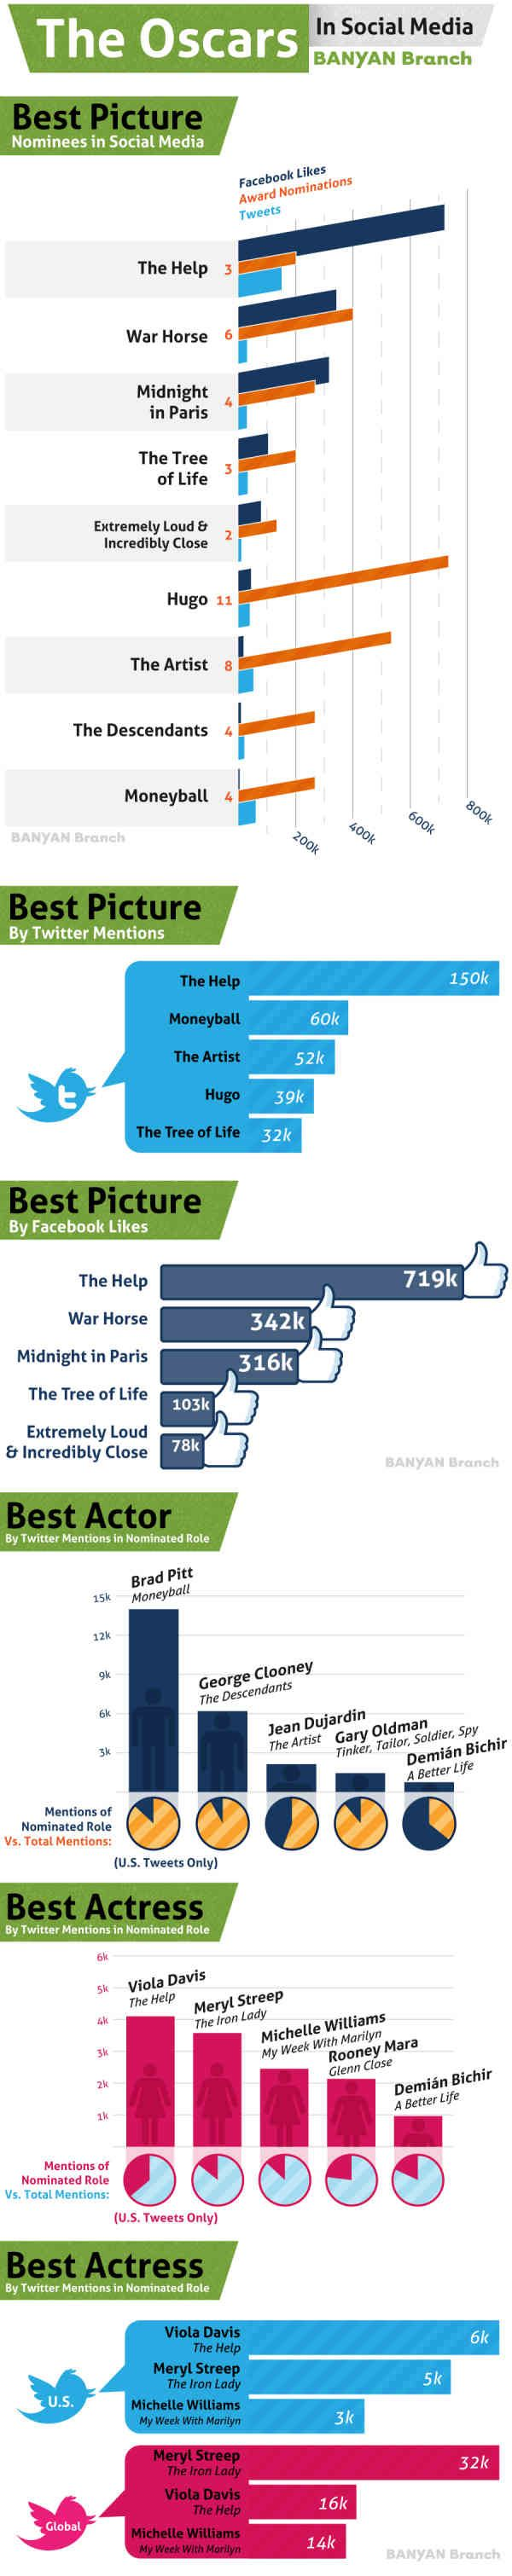 The Oscars in Social Media -- although notice all the truly insightful stats are Twitter only.  Hmm...